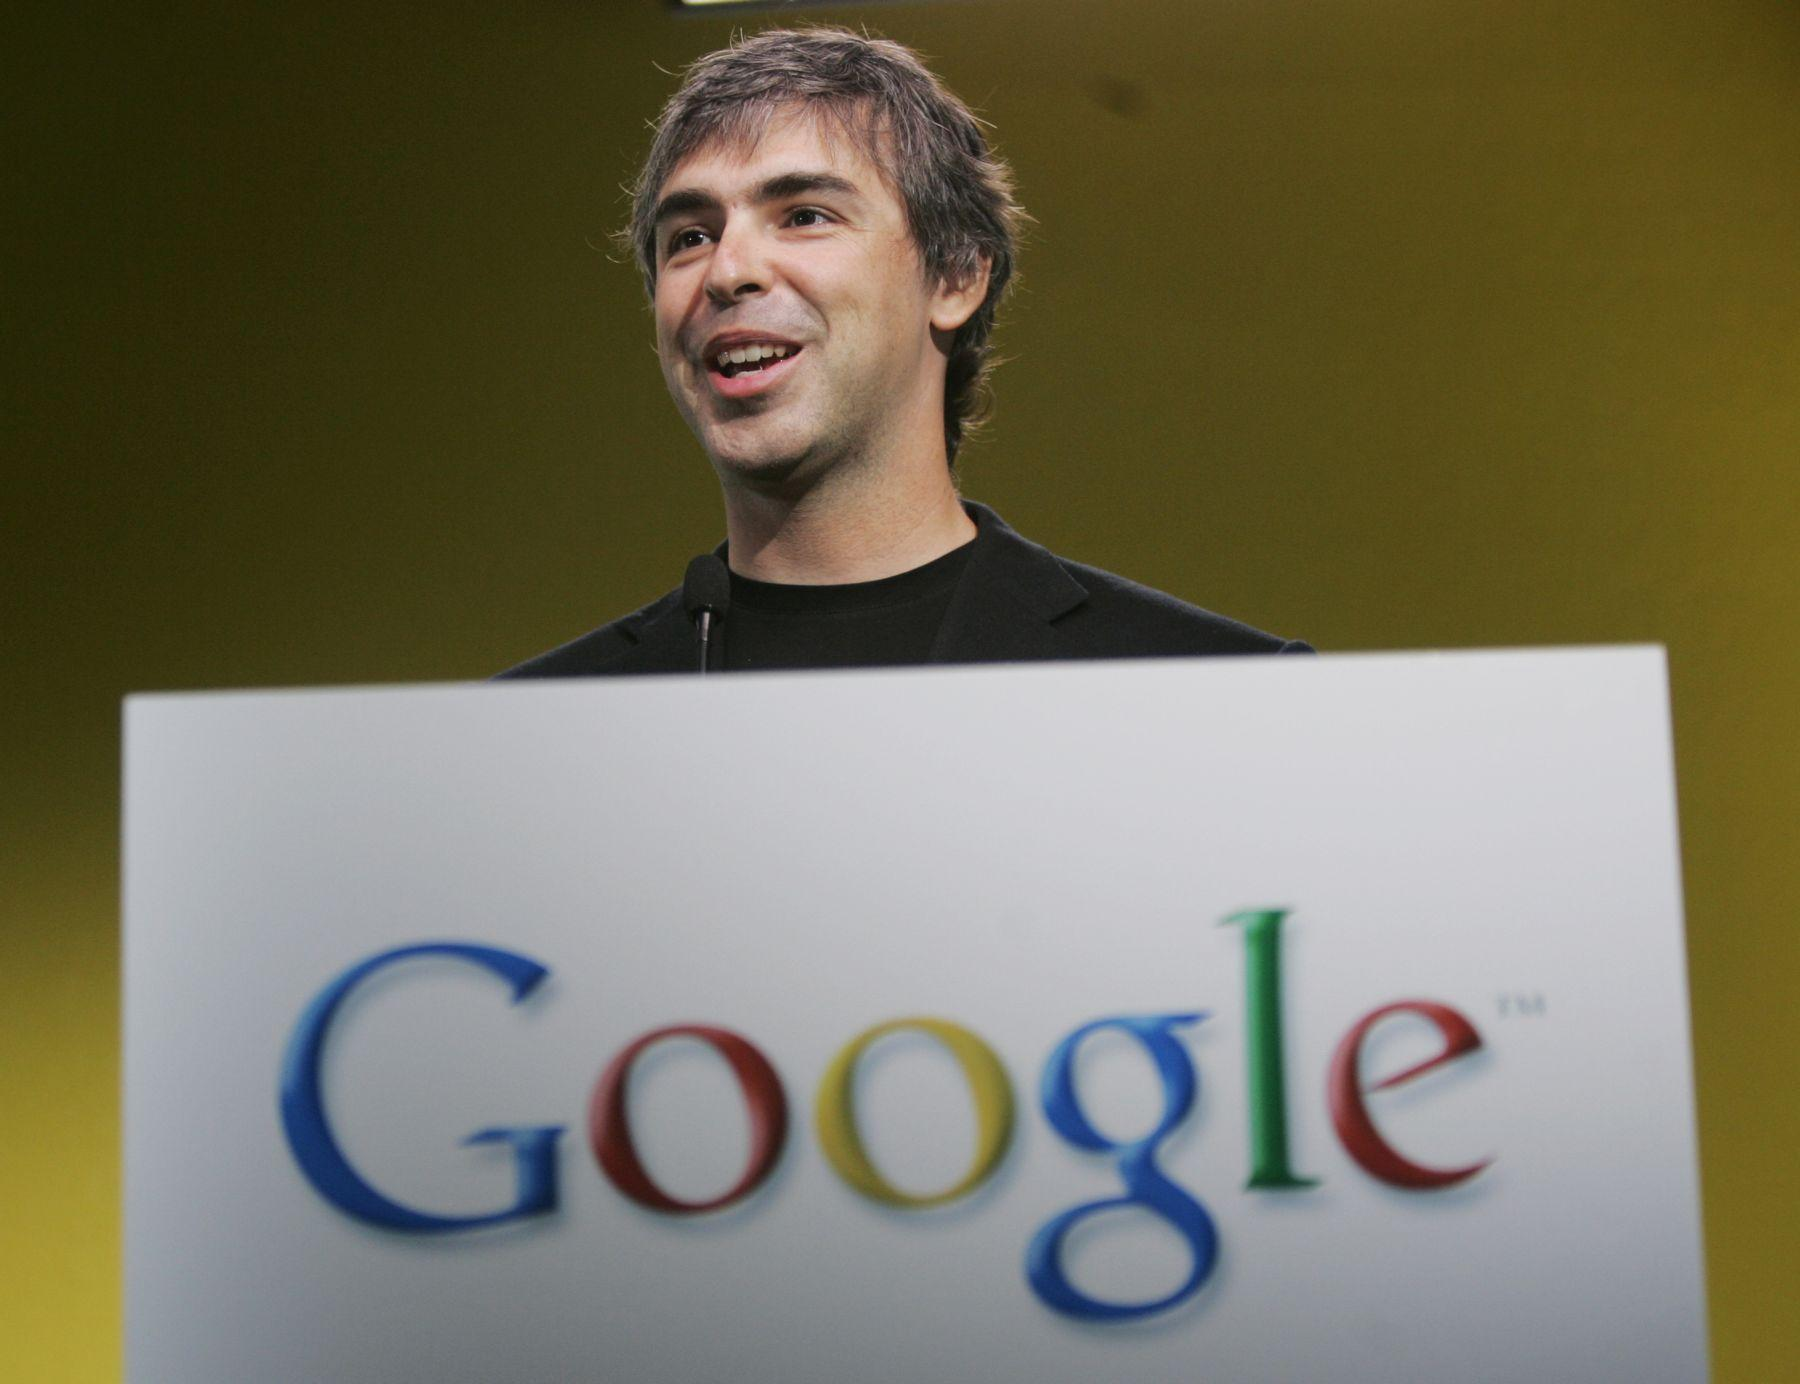 Larry Page | Desktop Backgrounds